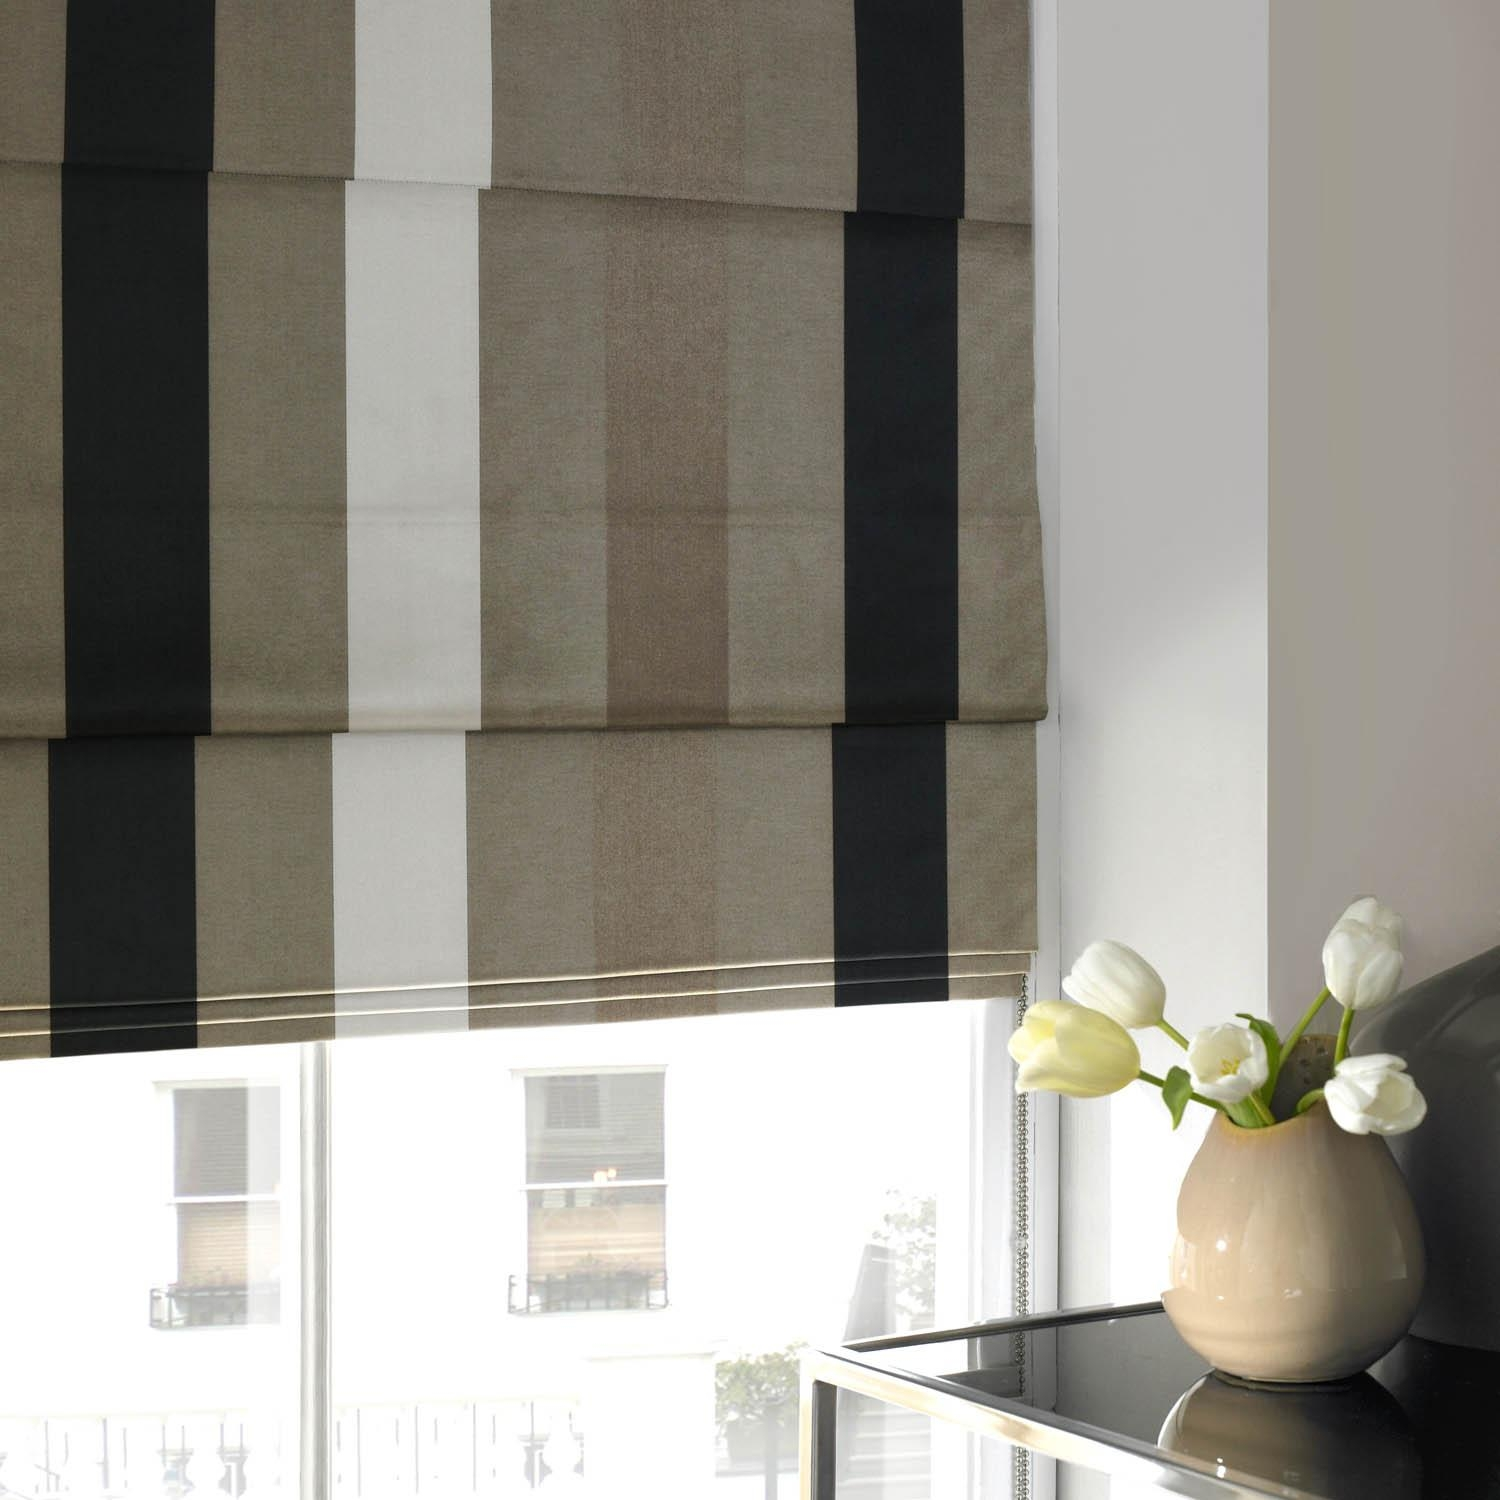 Taffeta Stripe Roman Blind Noir Free Uk Delivery Terrys Fabrics With Regard To Striped Roman Blinds (Image 15 of 15)